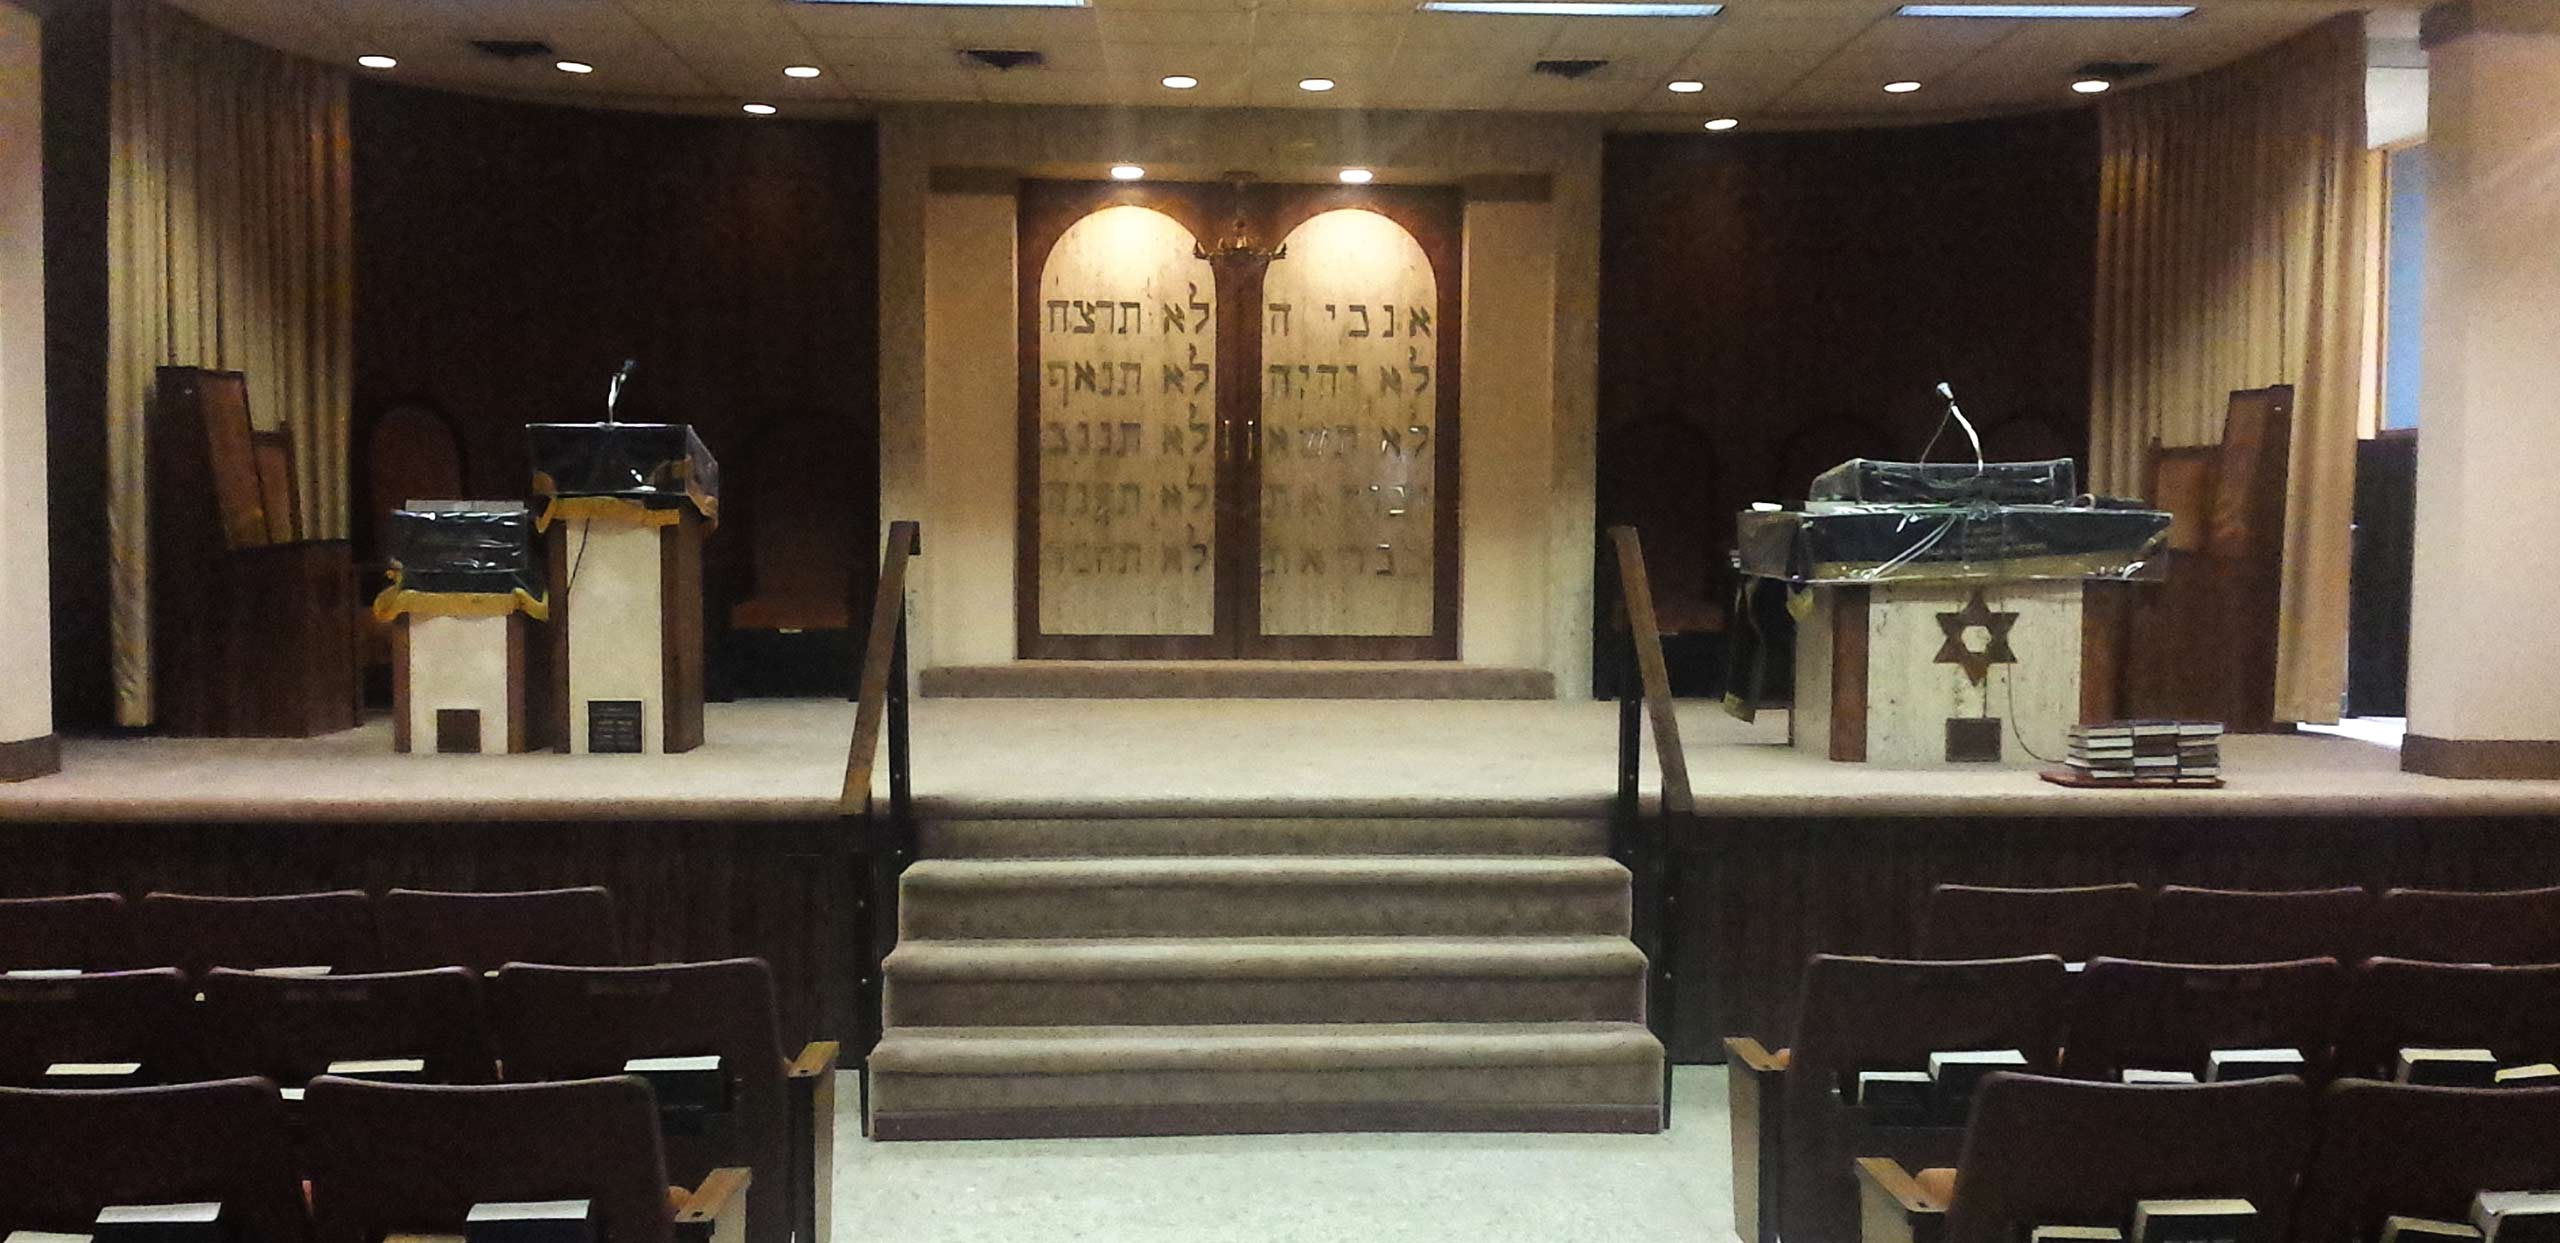 Temple Beth Ami Synagogue Philadelphia Bema, Ark with Torahs, Cantor